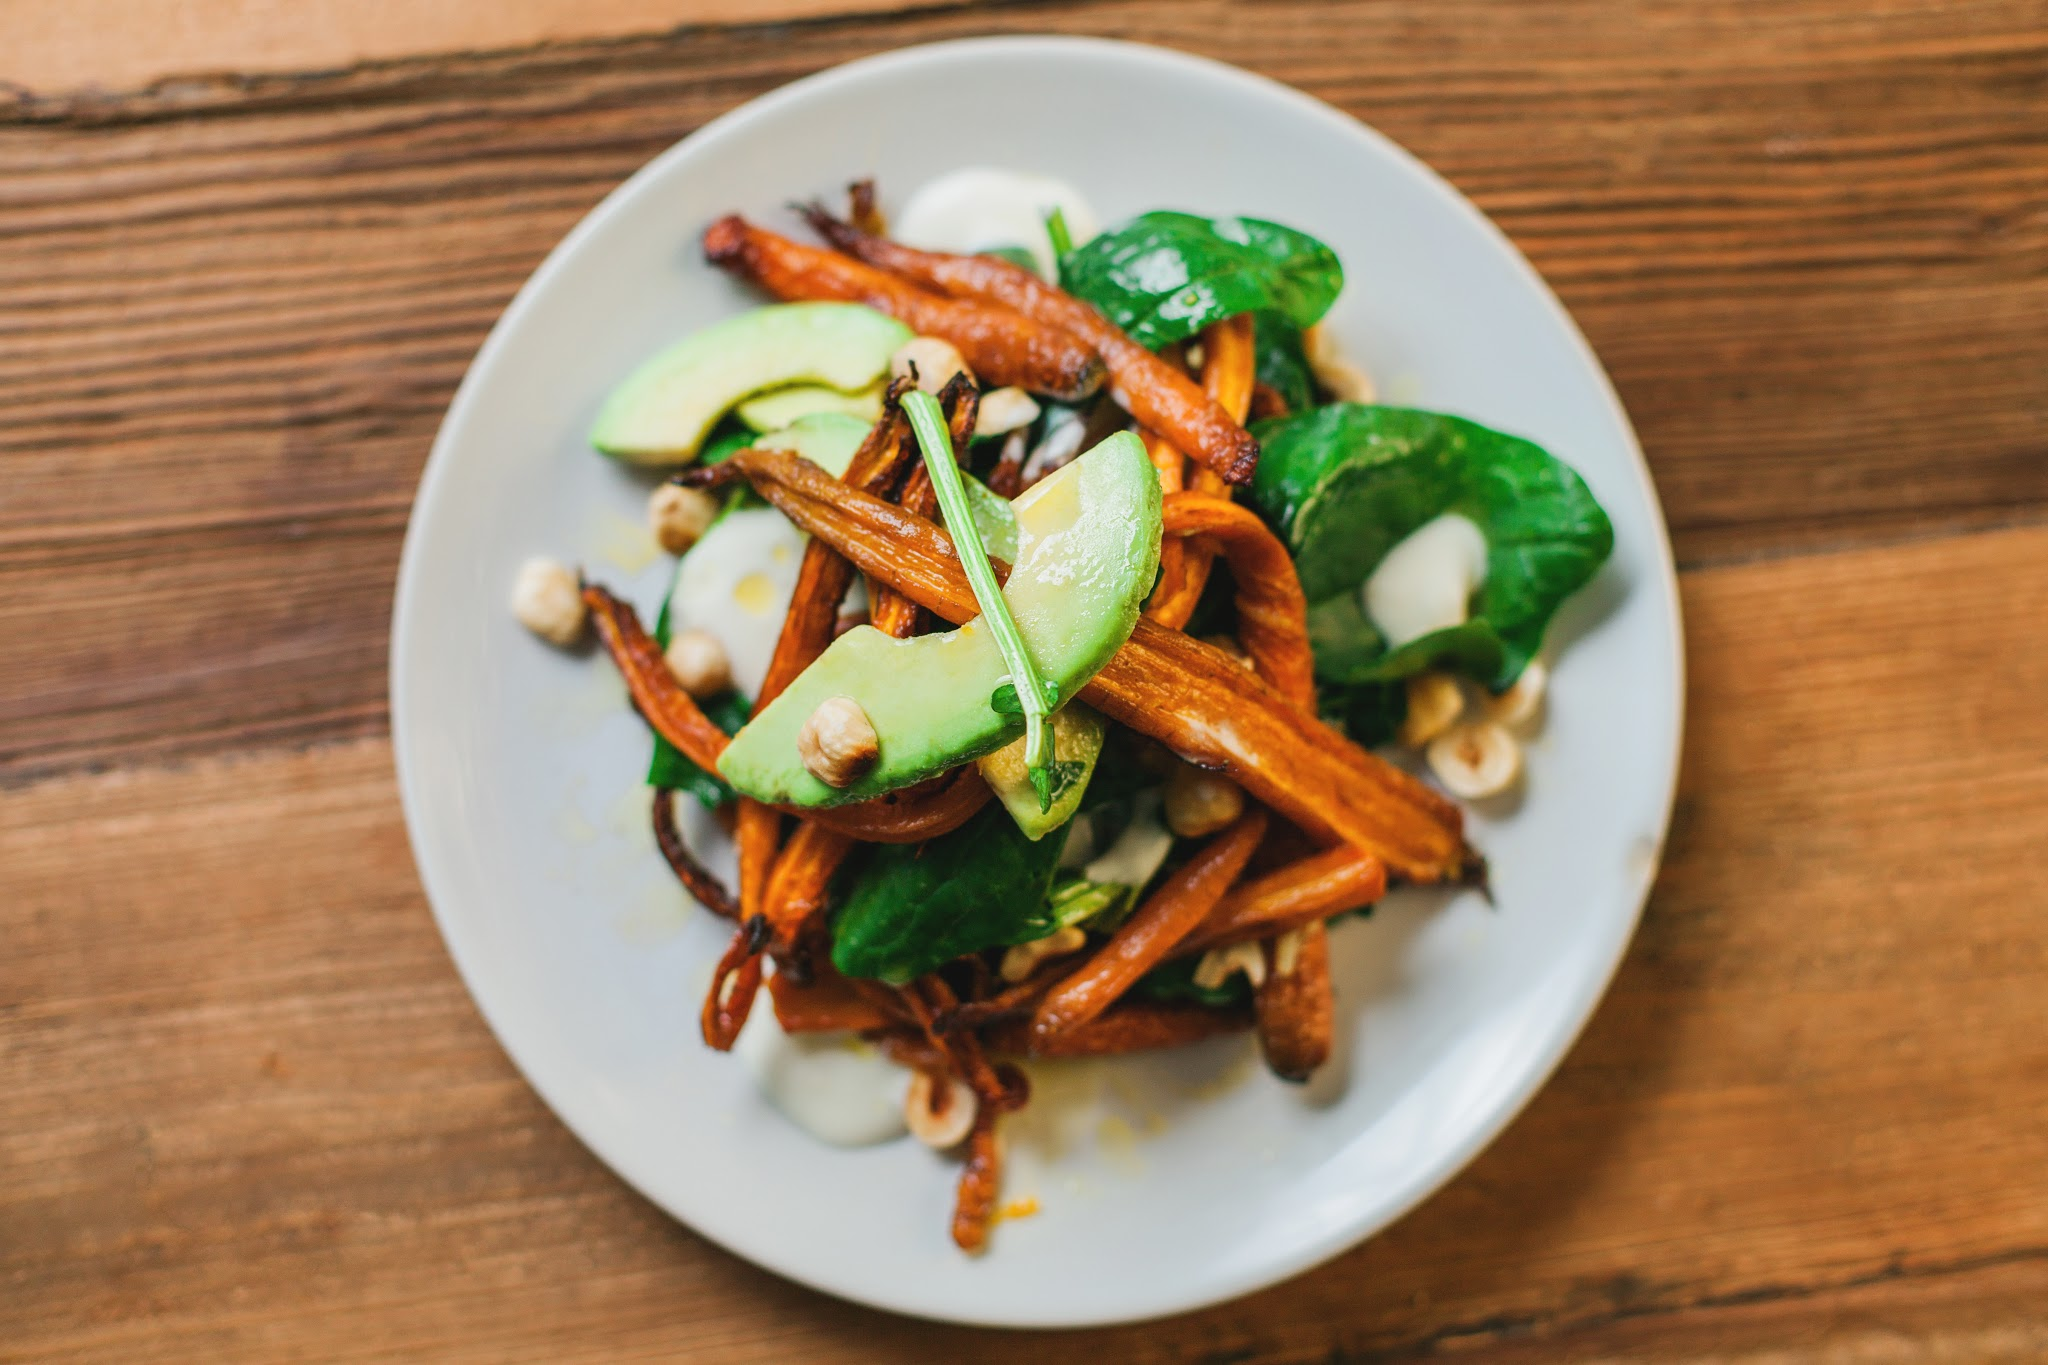 Roasted carrot salad with avocado and hazelnuts...yumm.